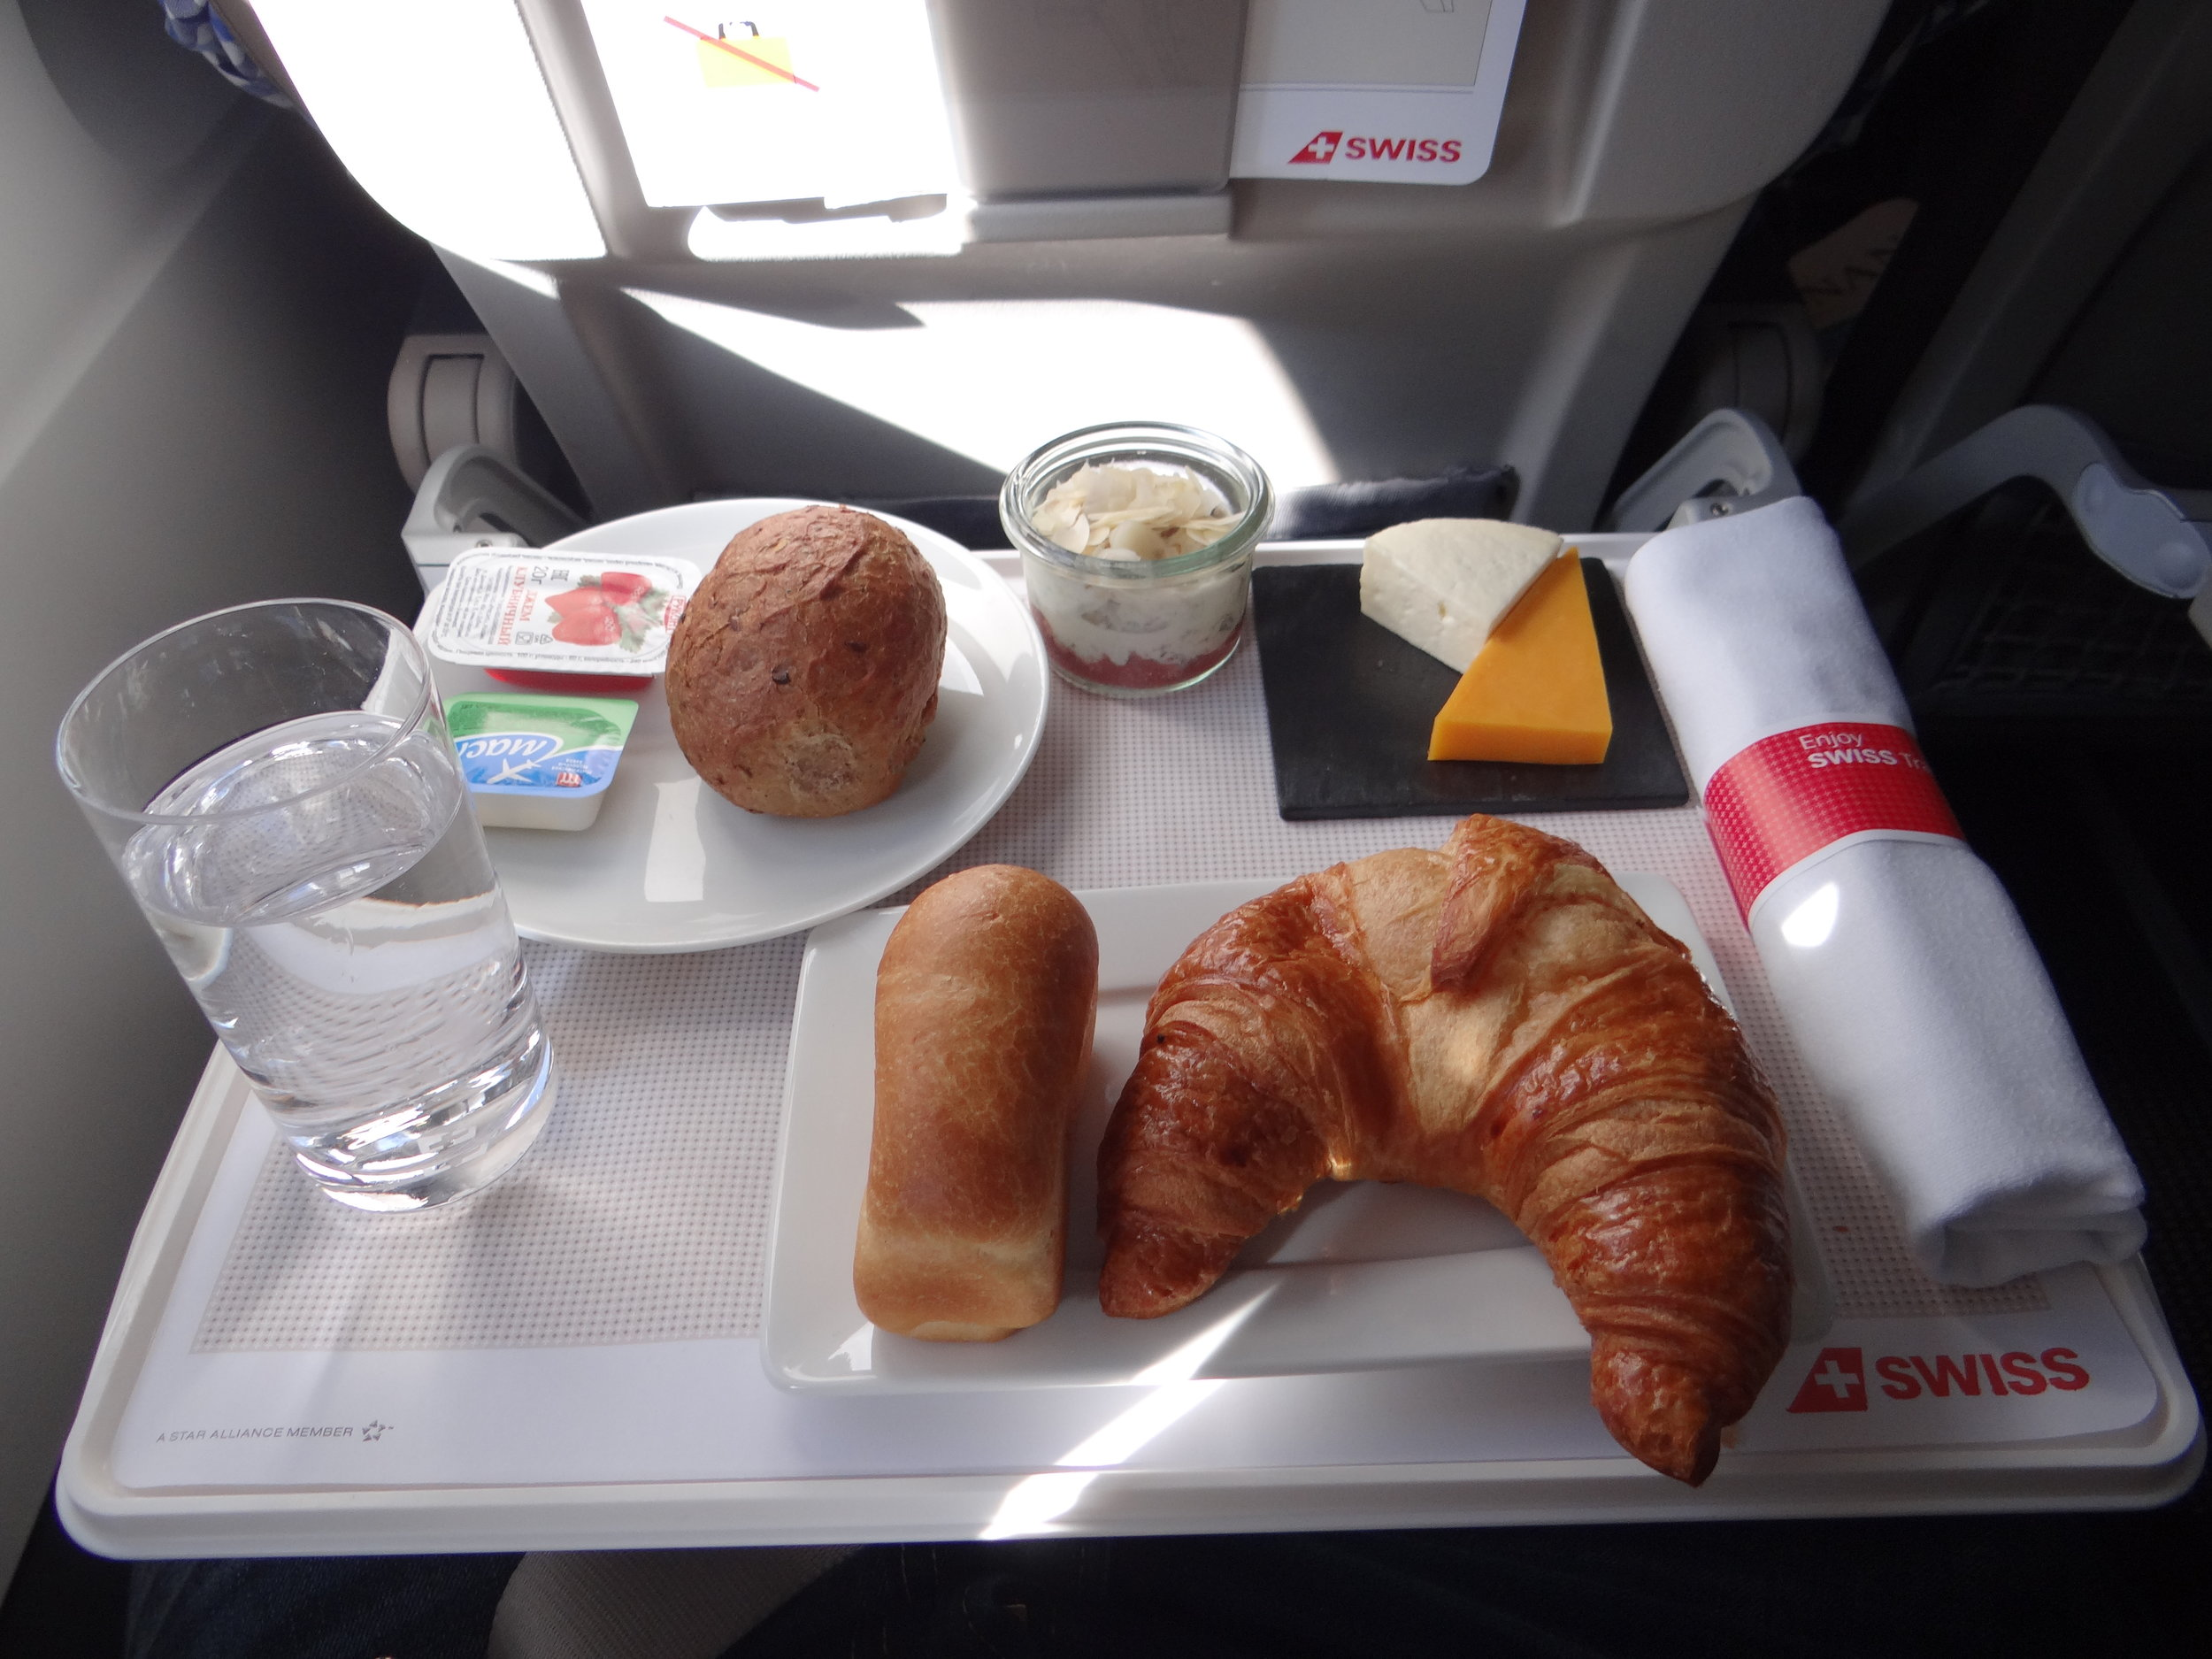 Food and service is, indeed, better than in economy - I had already grab some appettizers at the lounge, so I declined the warm breakfast - croissants were excellent, though, and best of all was the cheese, served in a slate plate